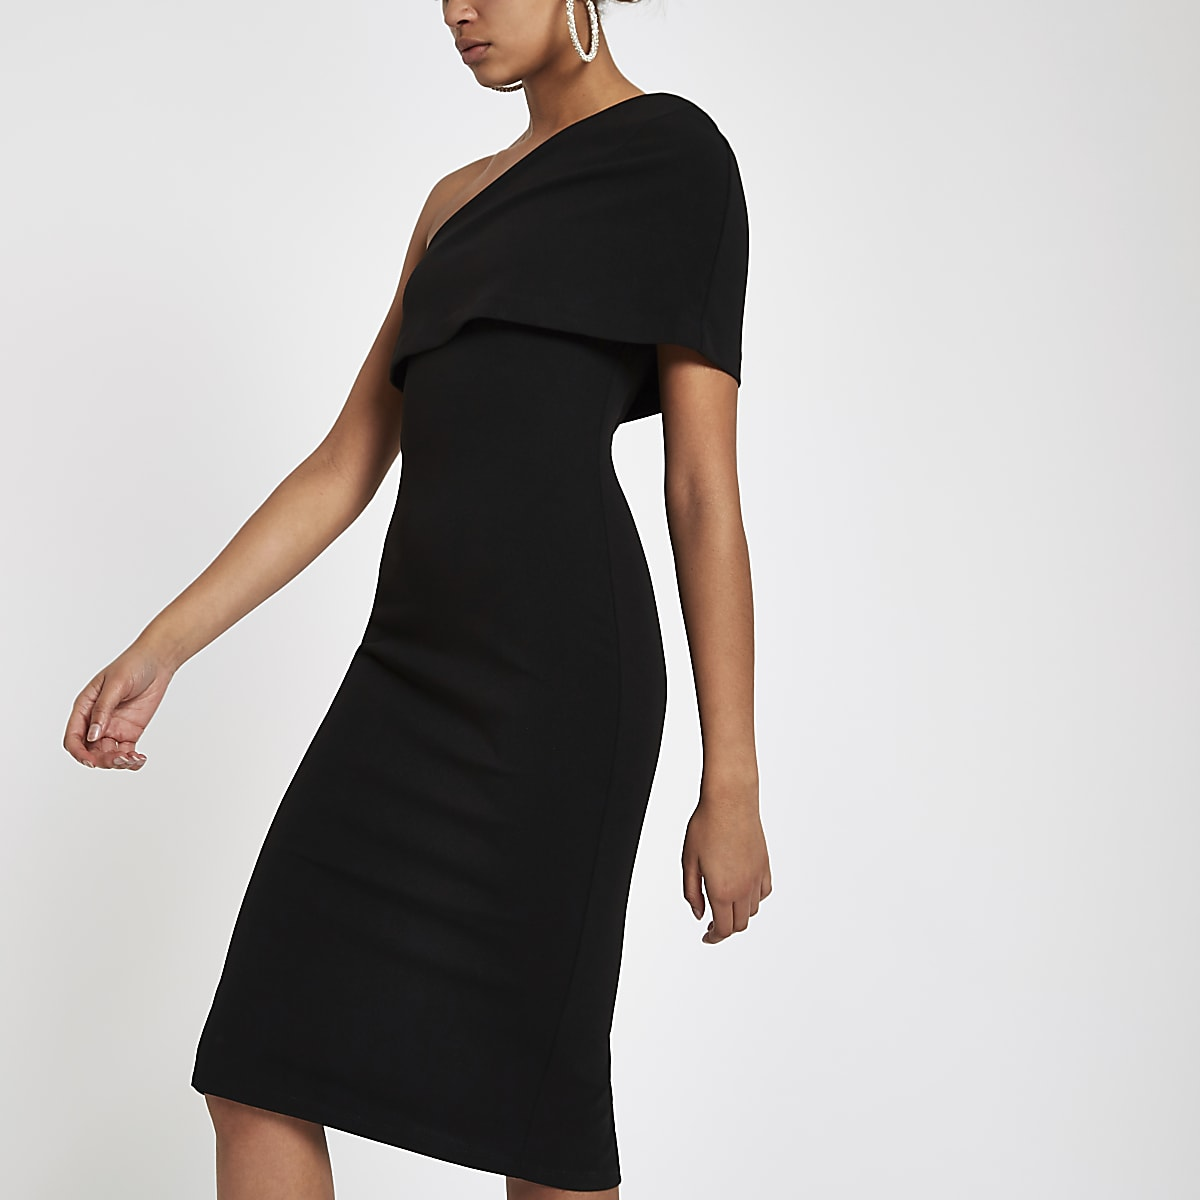 Black one shoulder cape bodycon dress